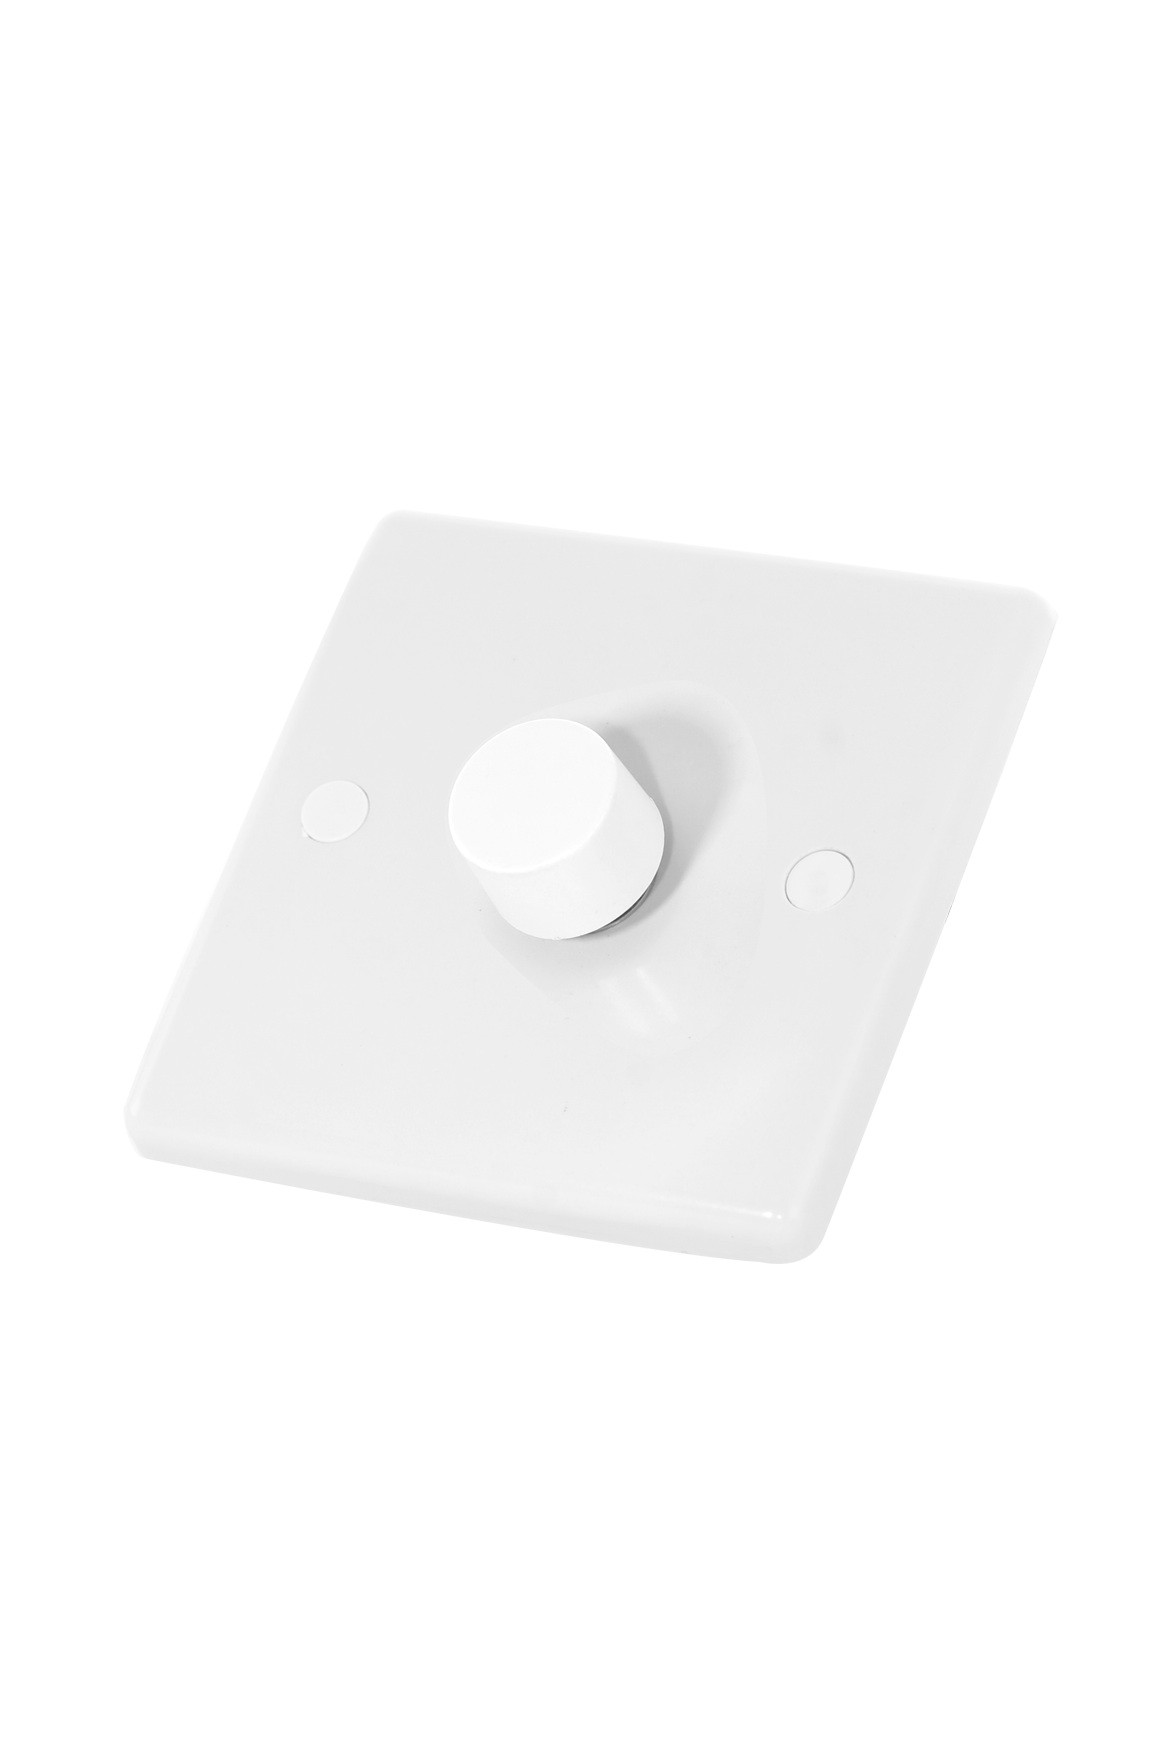 Selectric Smooth Dimmer Light Switch (Non-Derating) - 400W - 1 Gang, 2 Way